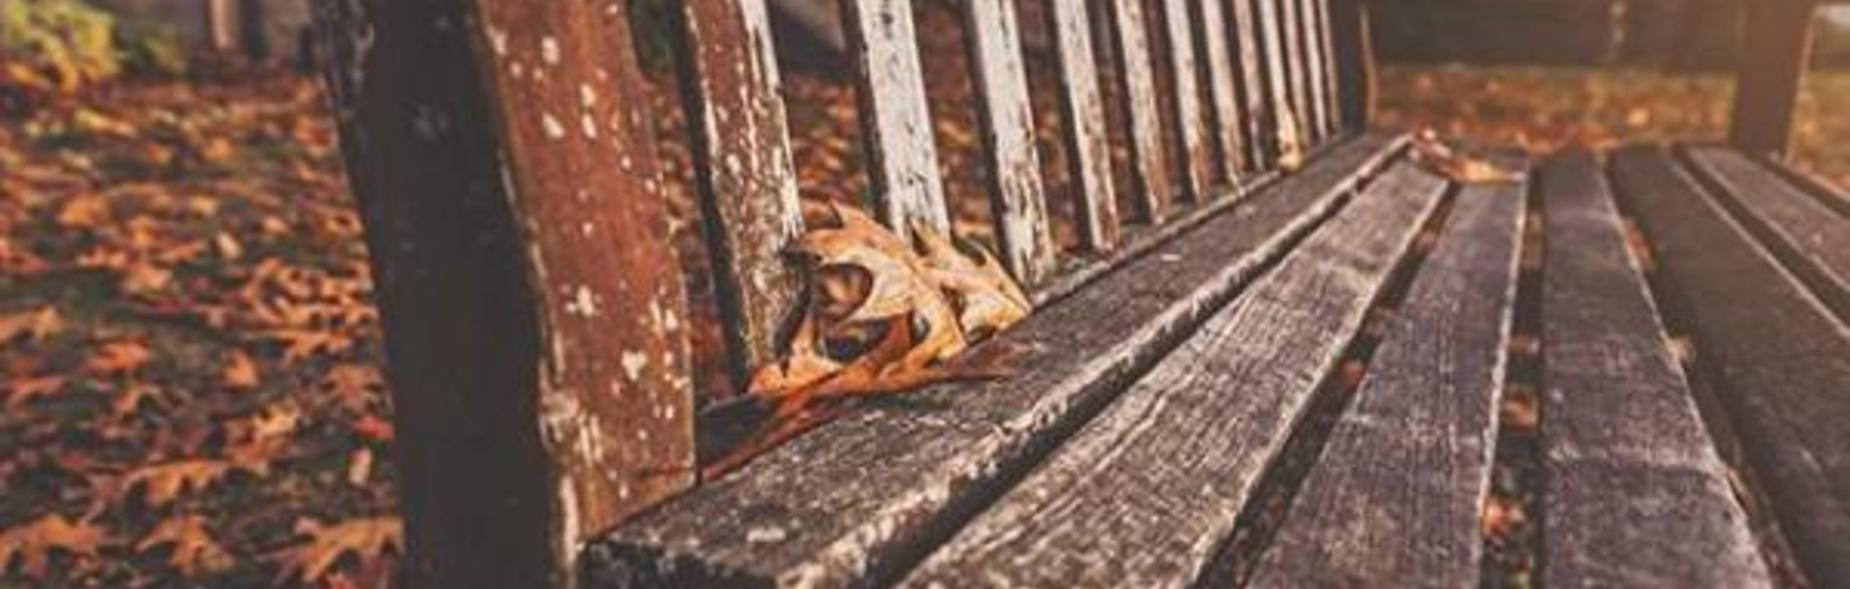 Fall Bench with autumn leaves